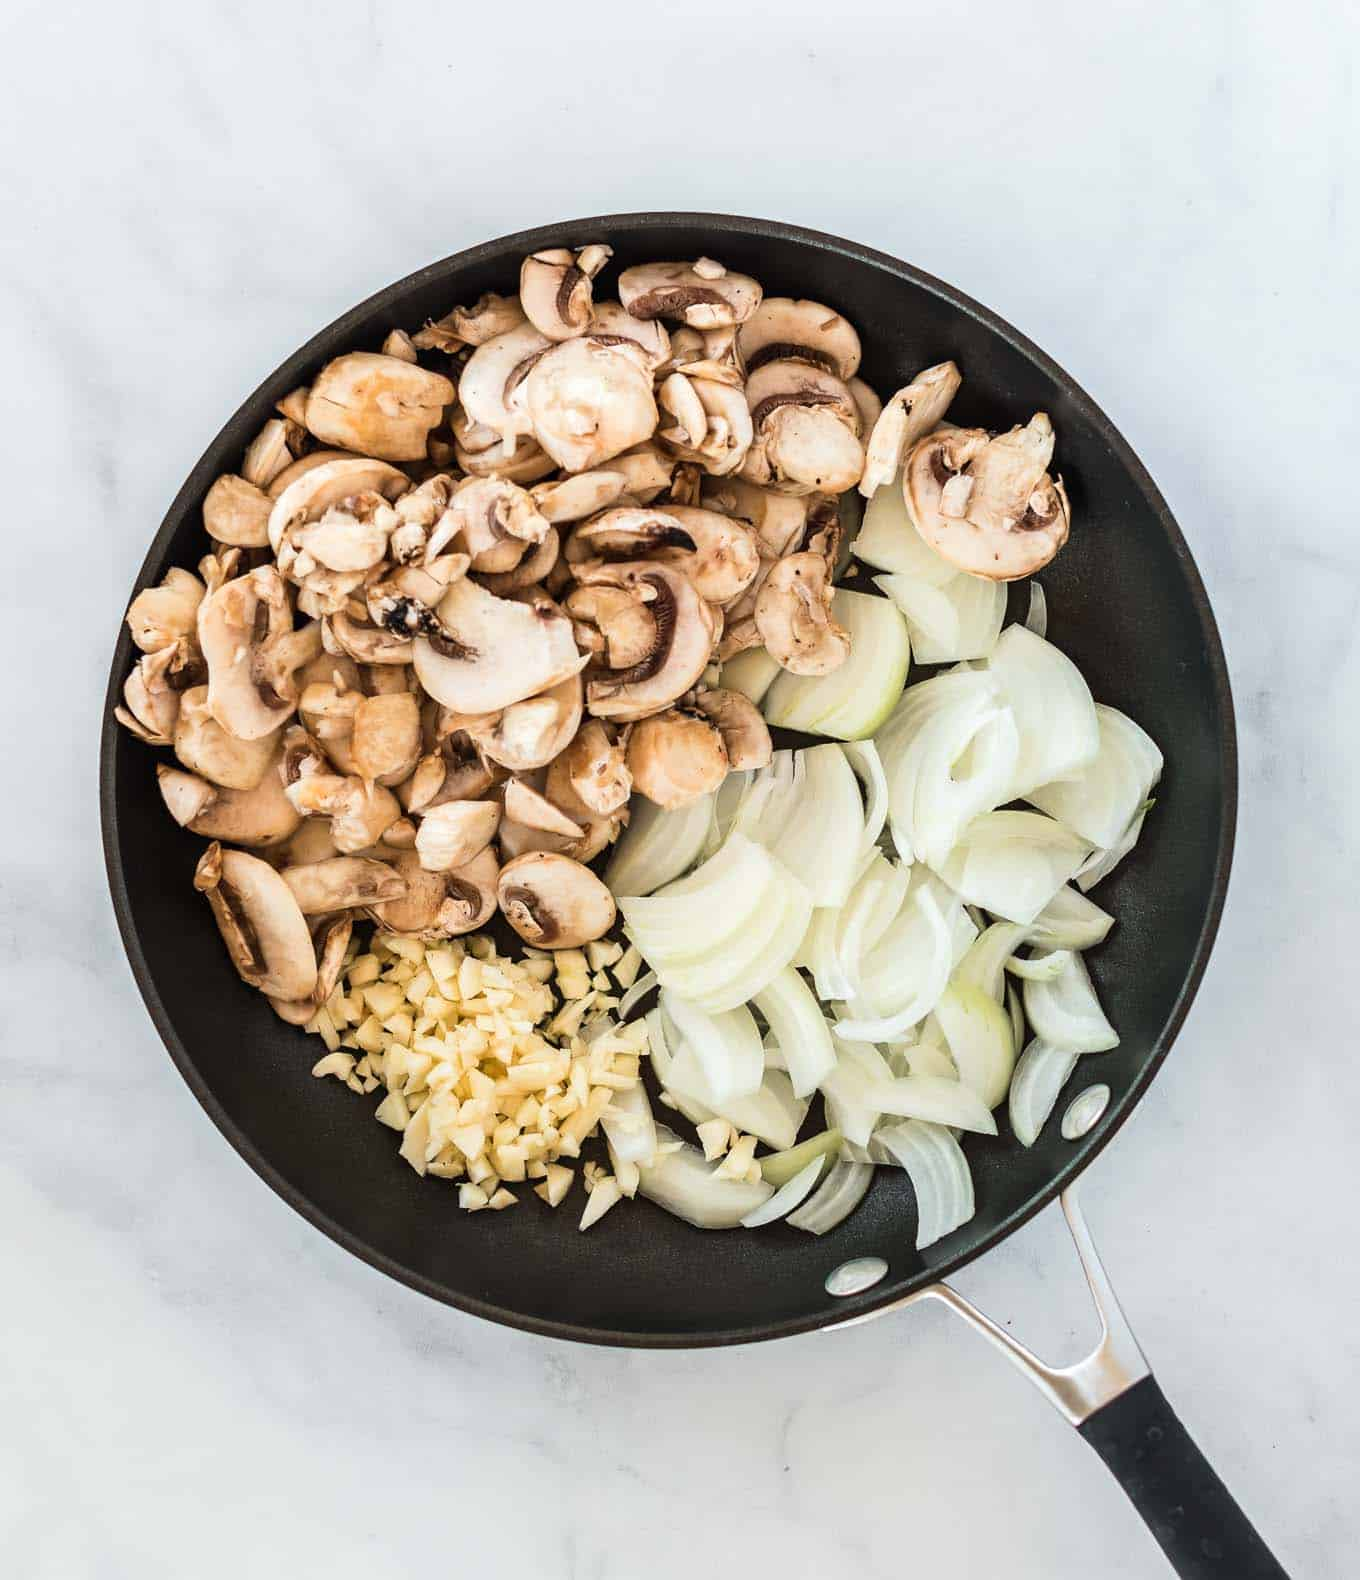 a skillet with mushrooms, minced garlic, and chopped onion in it